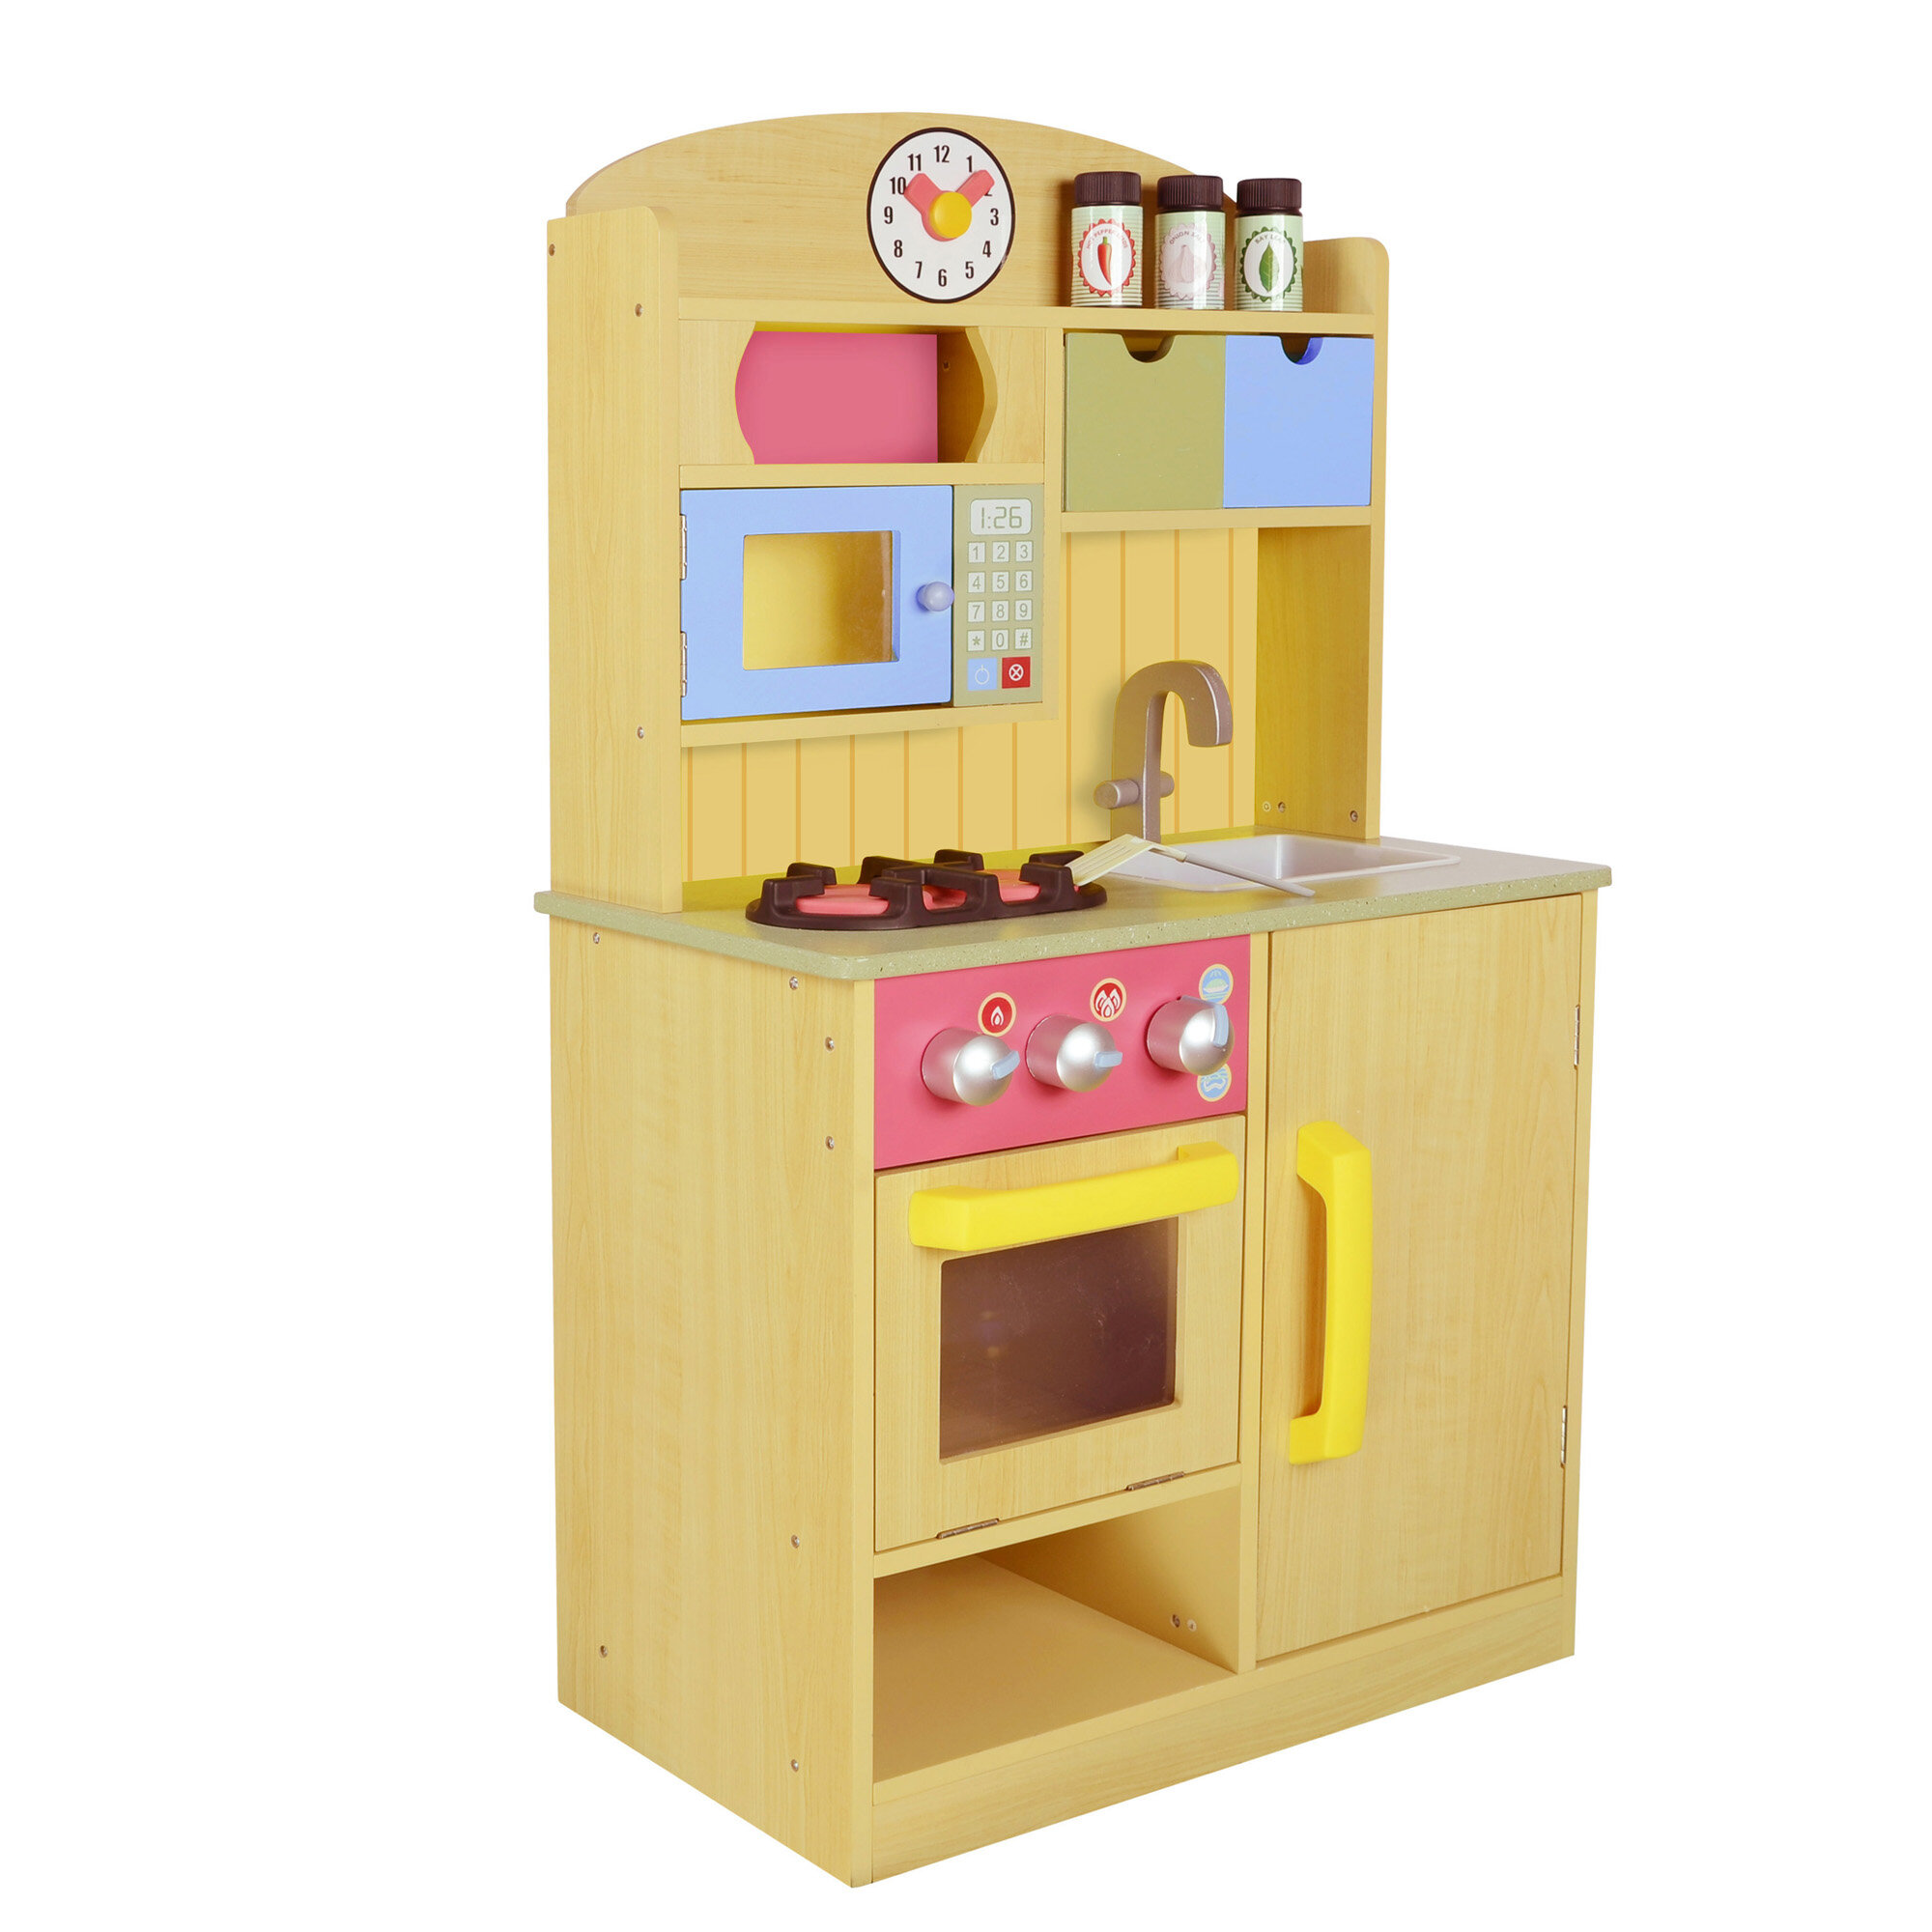 about teamson kids little chef wooden play kitchen with accessories